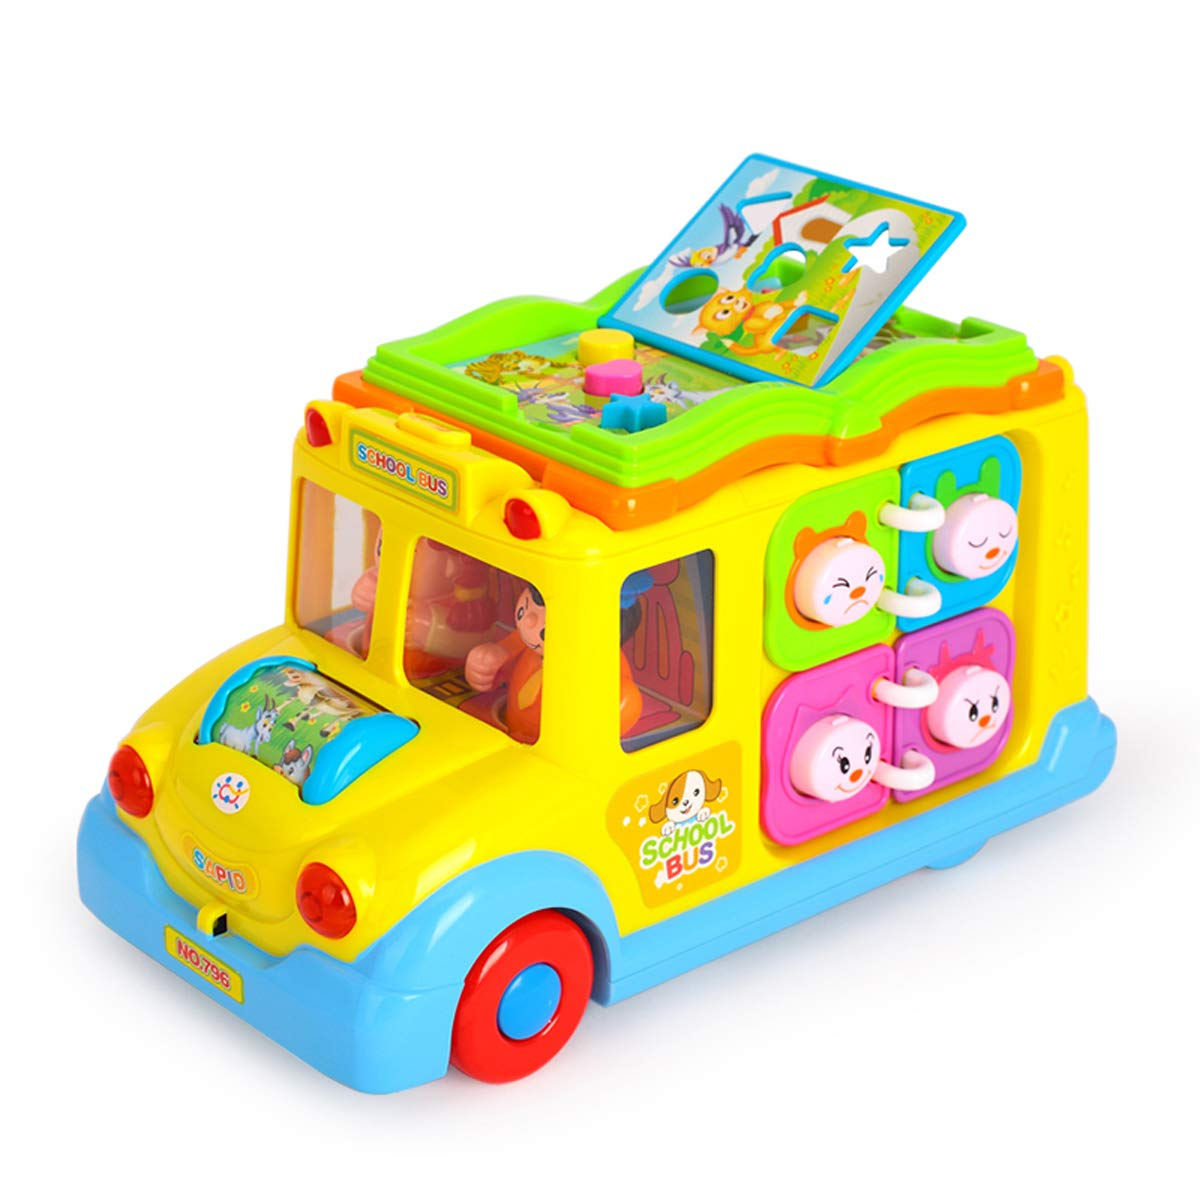 FUNFIELD Kids School Bus Toy with Flipping Page Musical for 1 2 3 Year Old Boys and Girls Kids